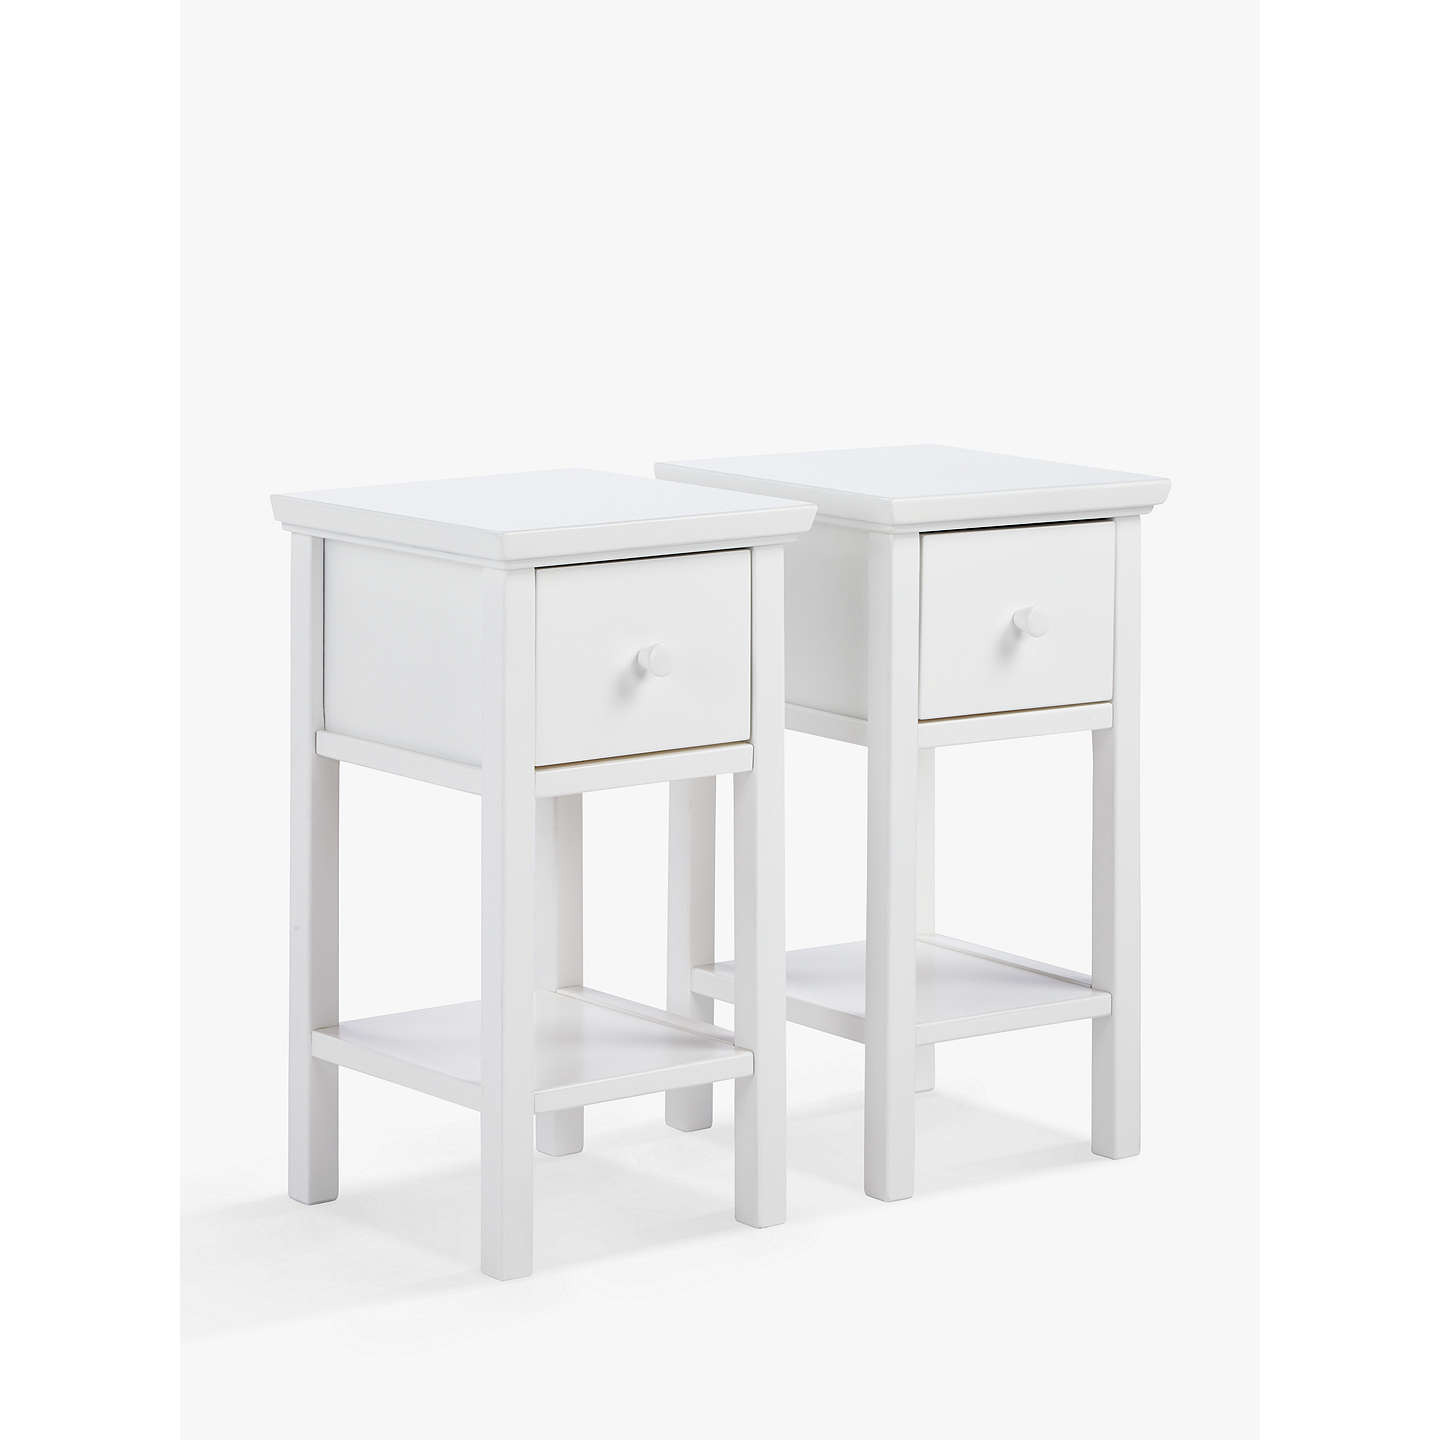 John Lewis Wilton Set Of 2 Bedside Tables At John Lewis